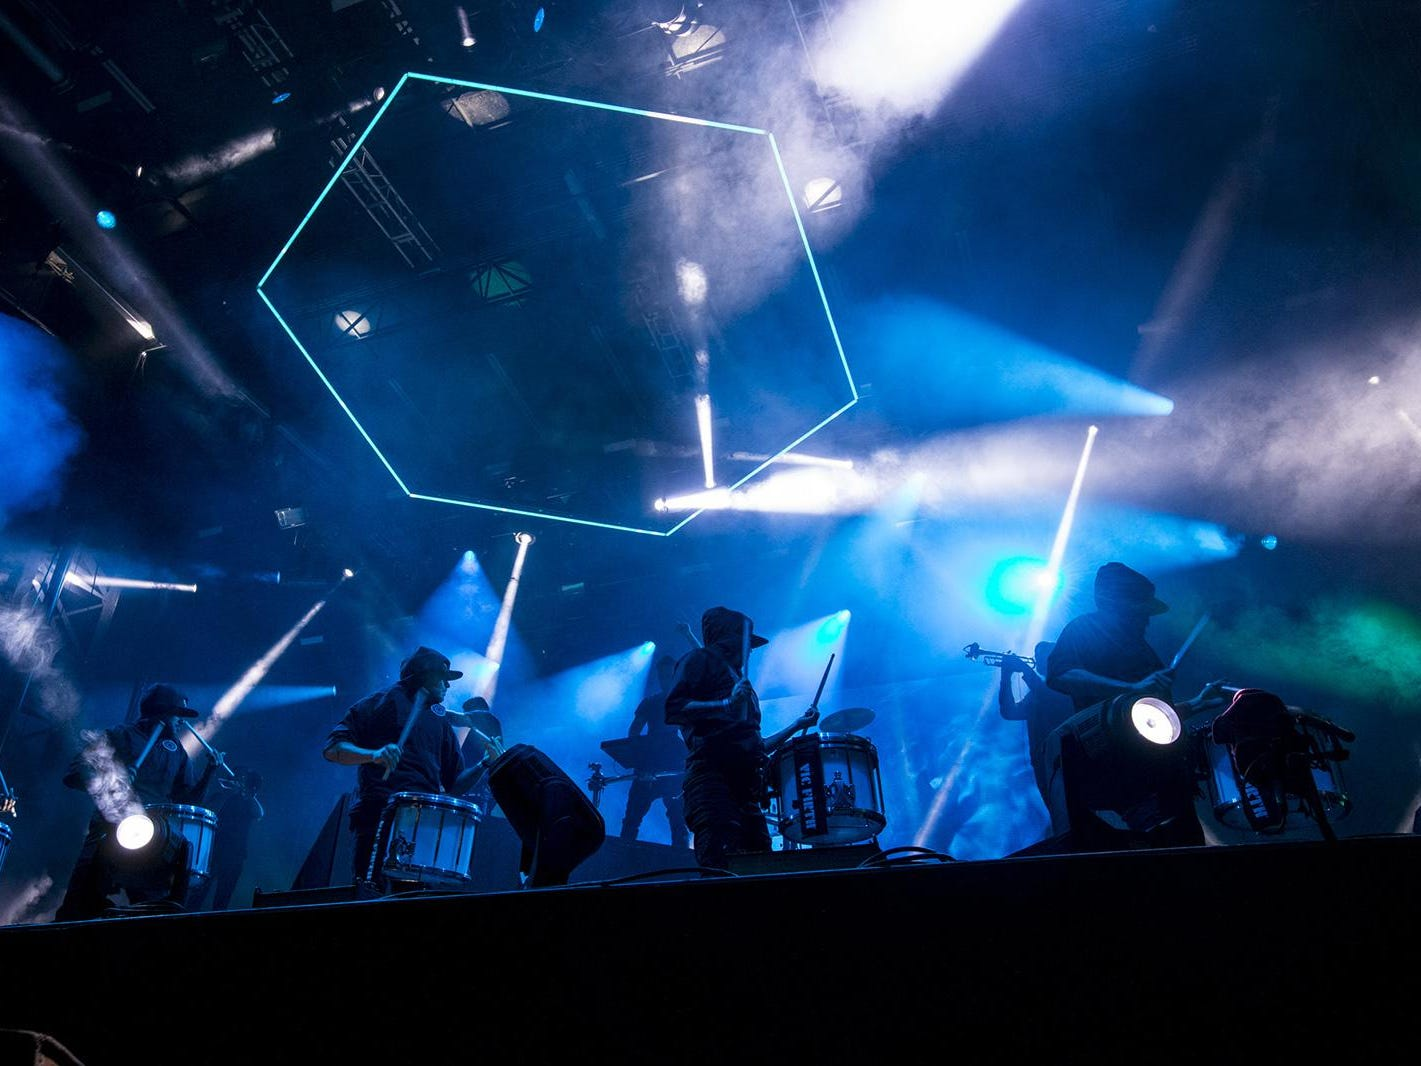 Odesza perform during McDowell Mountain Music Festival on Friday, March 1, 2019, at Margaret T. Hance Park in Phoenix.